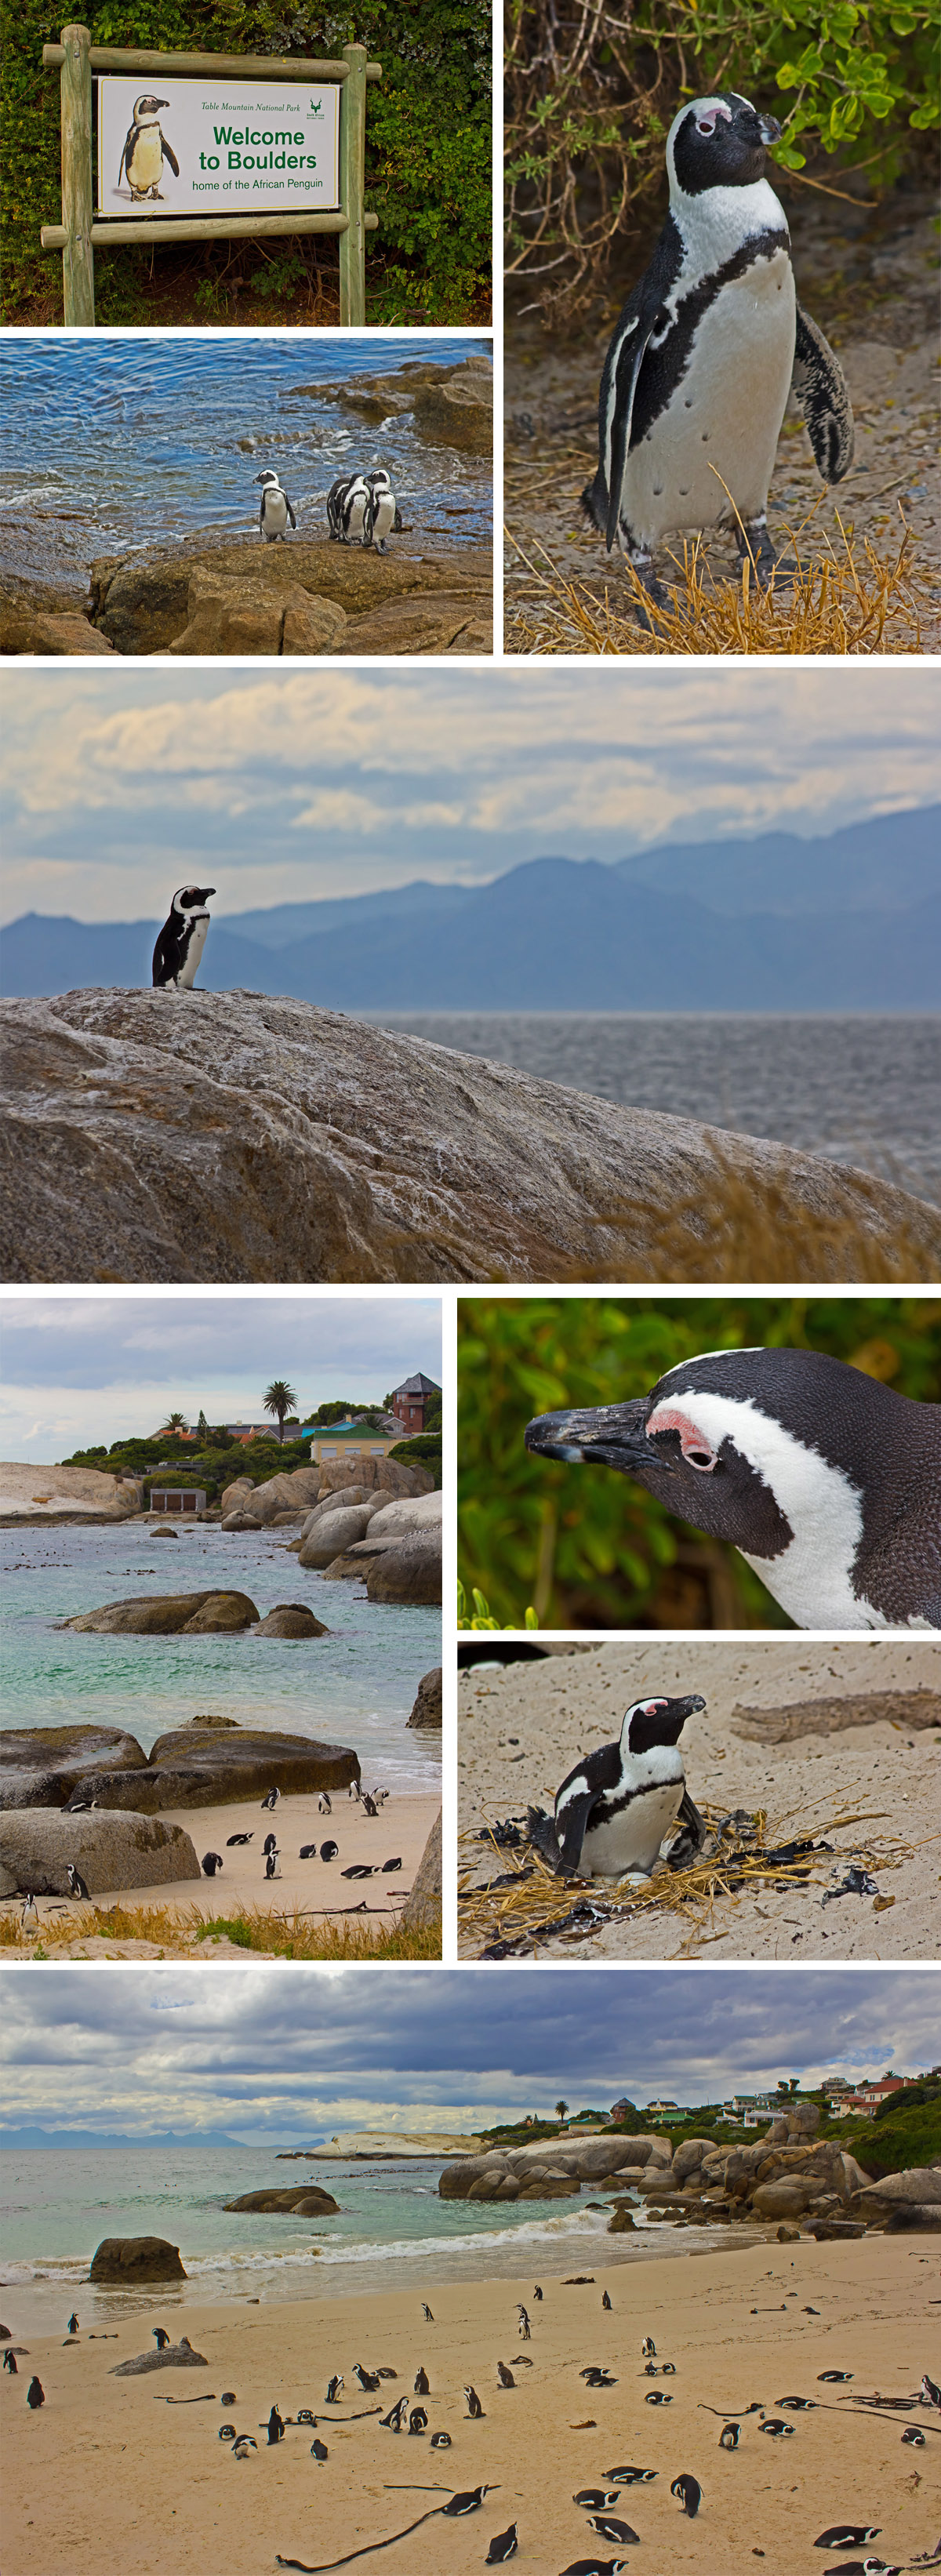 Blue Monkey Tours Review - Boulders Beach Penguins